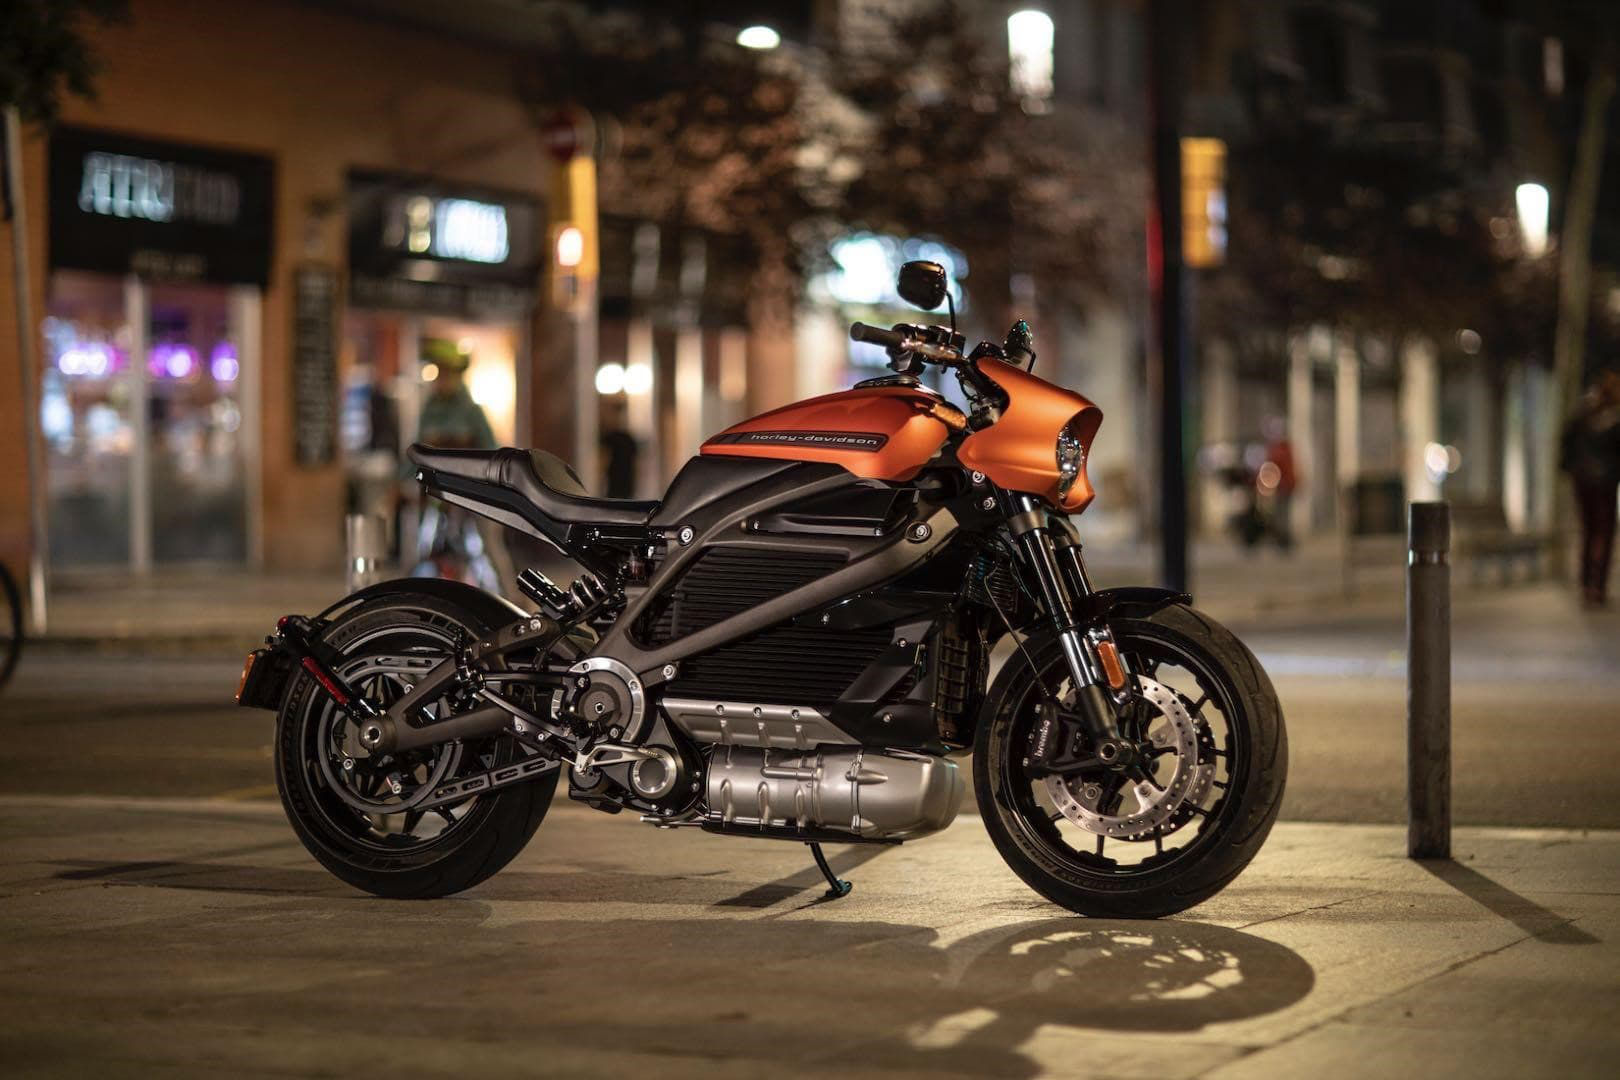 A Ride to the Future - Harley Davidson LiveWire